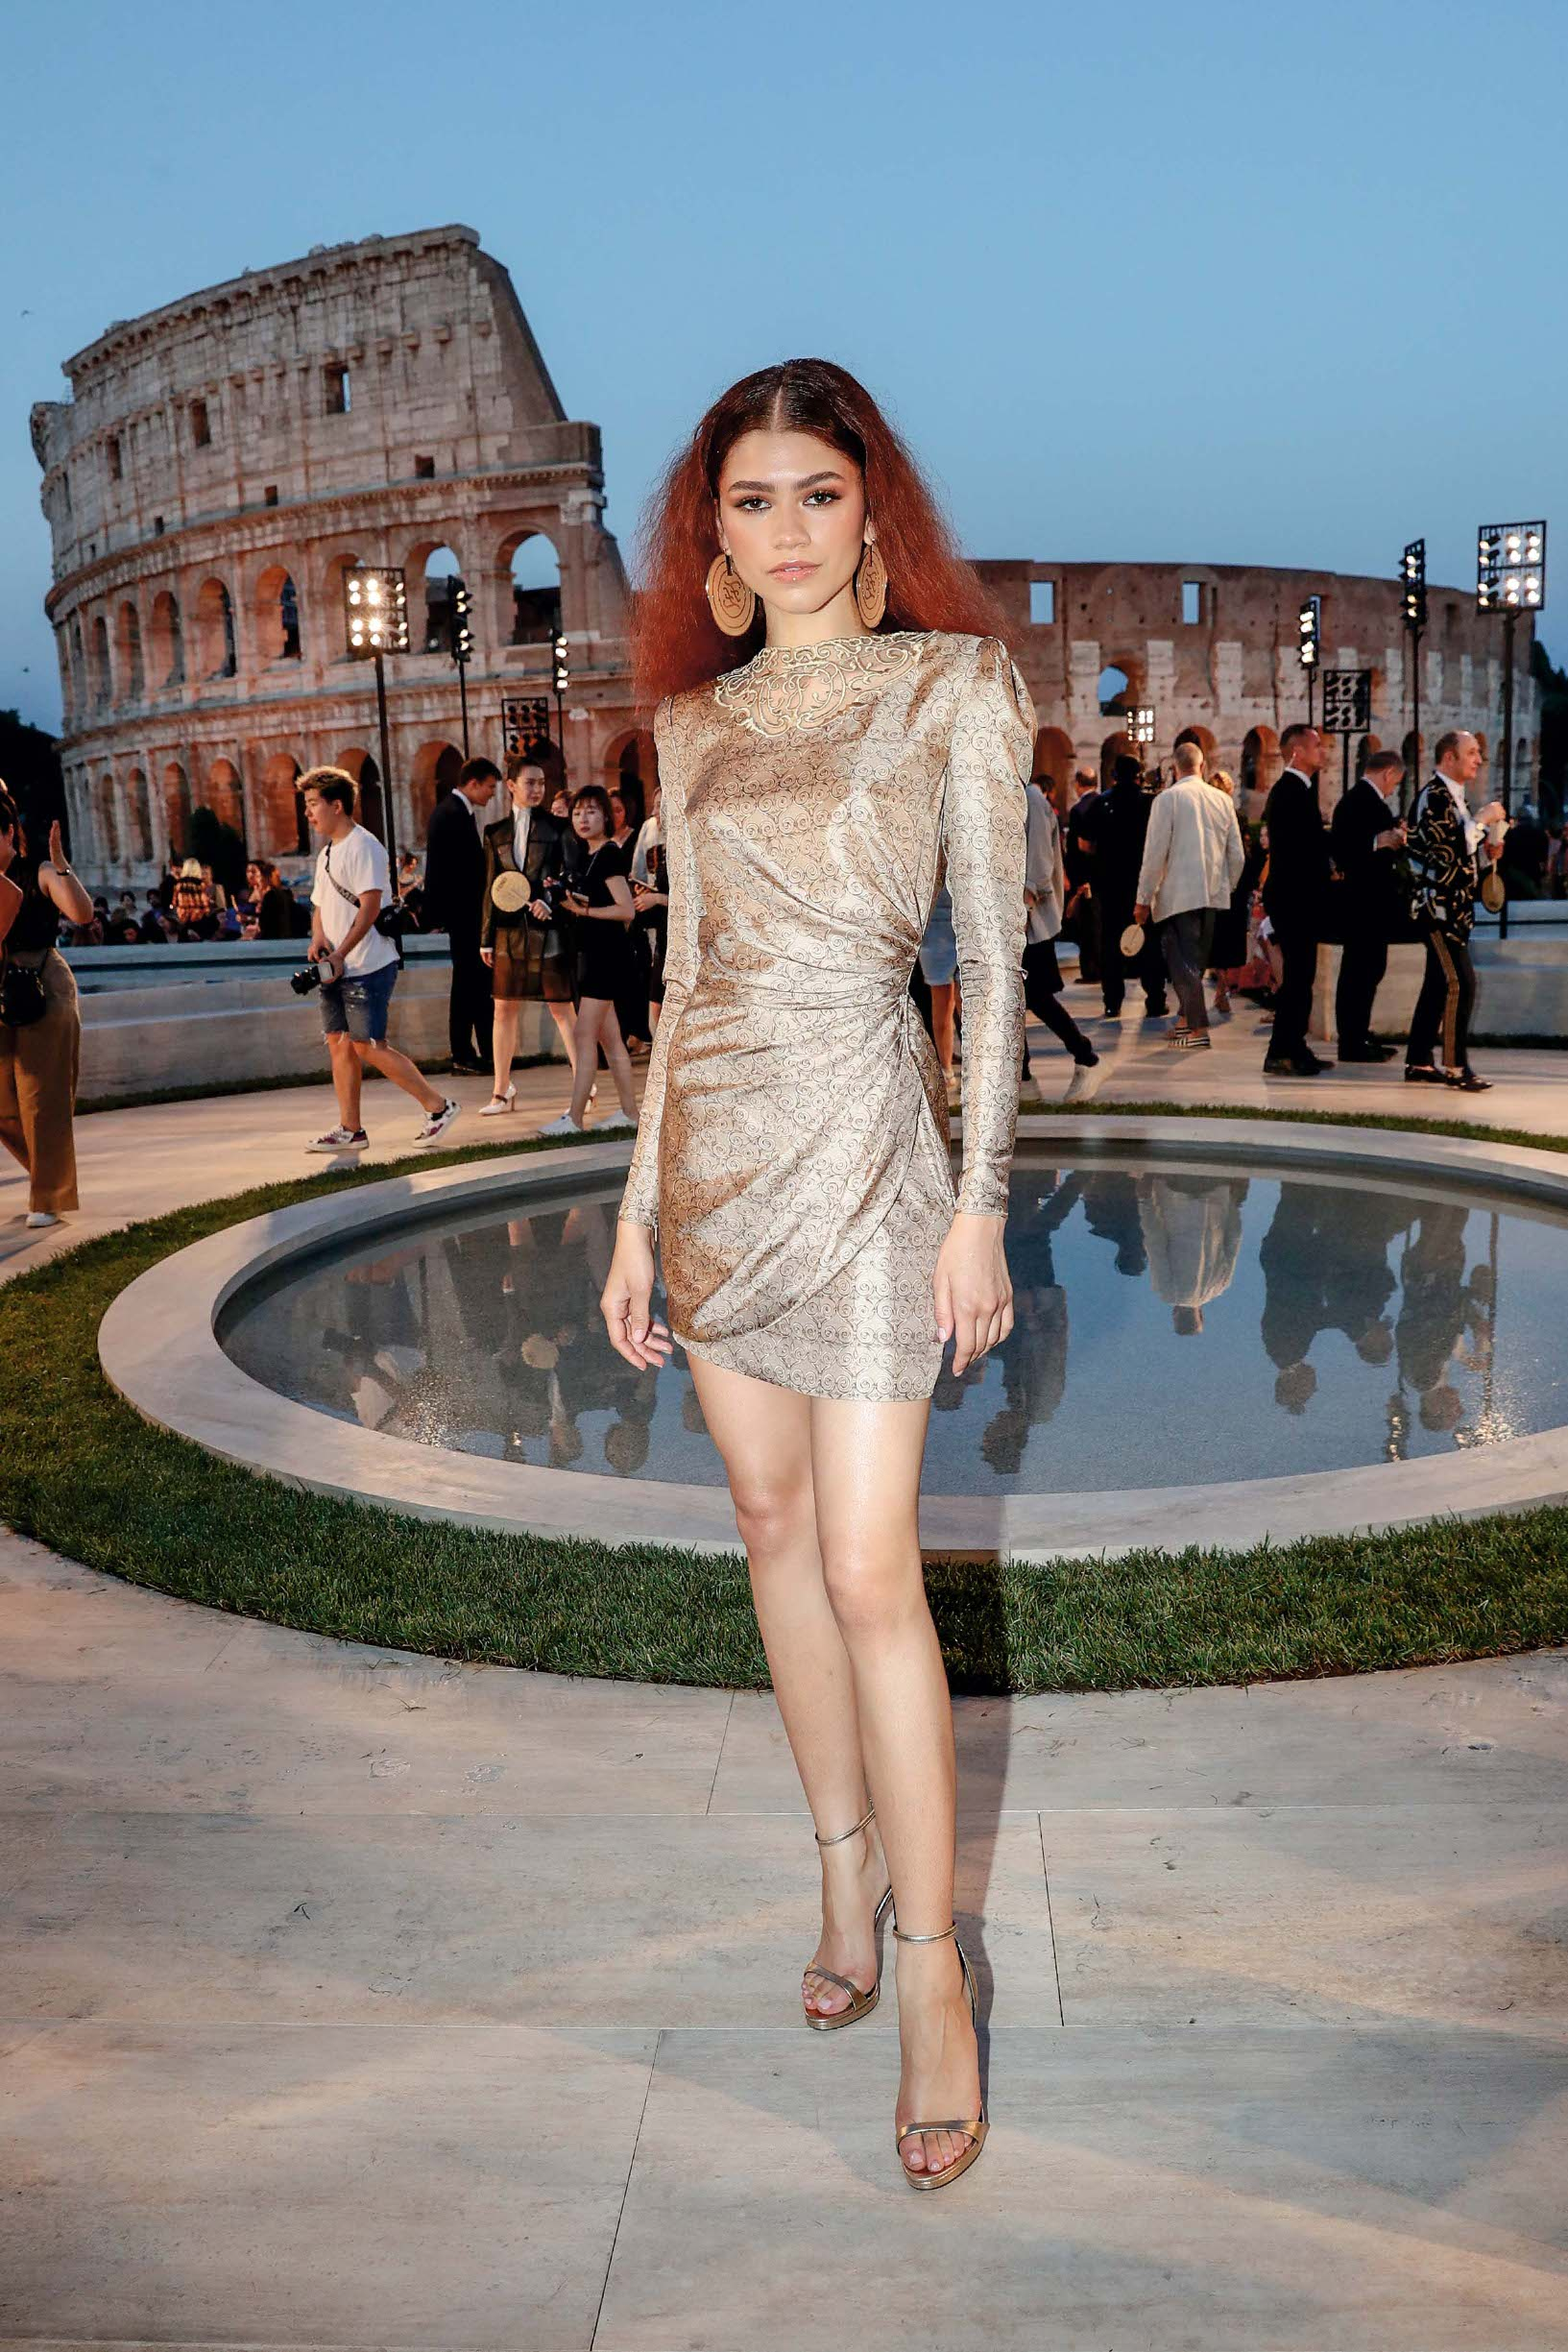 ROME, ITALY - JULY 04: Zendaya attends the Cocktail at Fendi Couture Fall Winter 2019/2020 on July 04, 2019 in Rome, Italy. (Photo by Vittorio Zunino Celotto/Getty Images for Fendi)